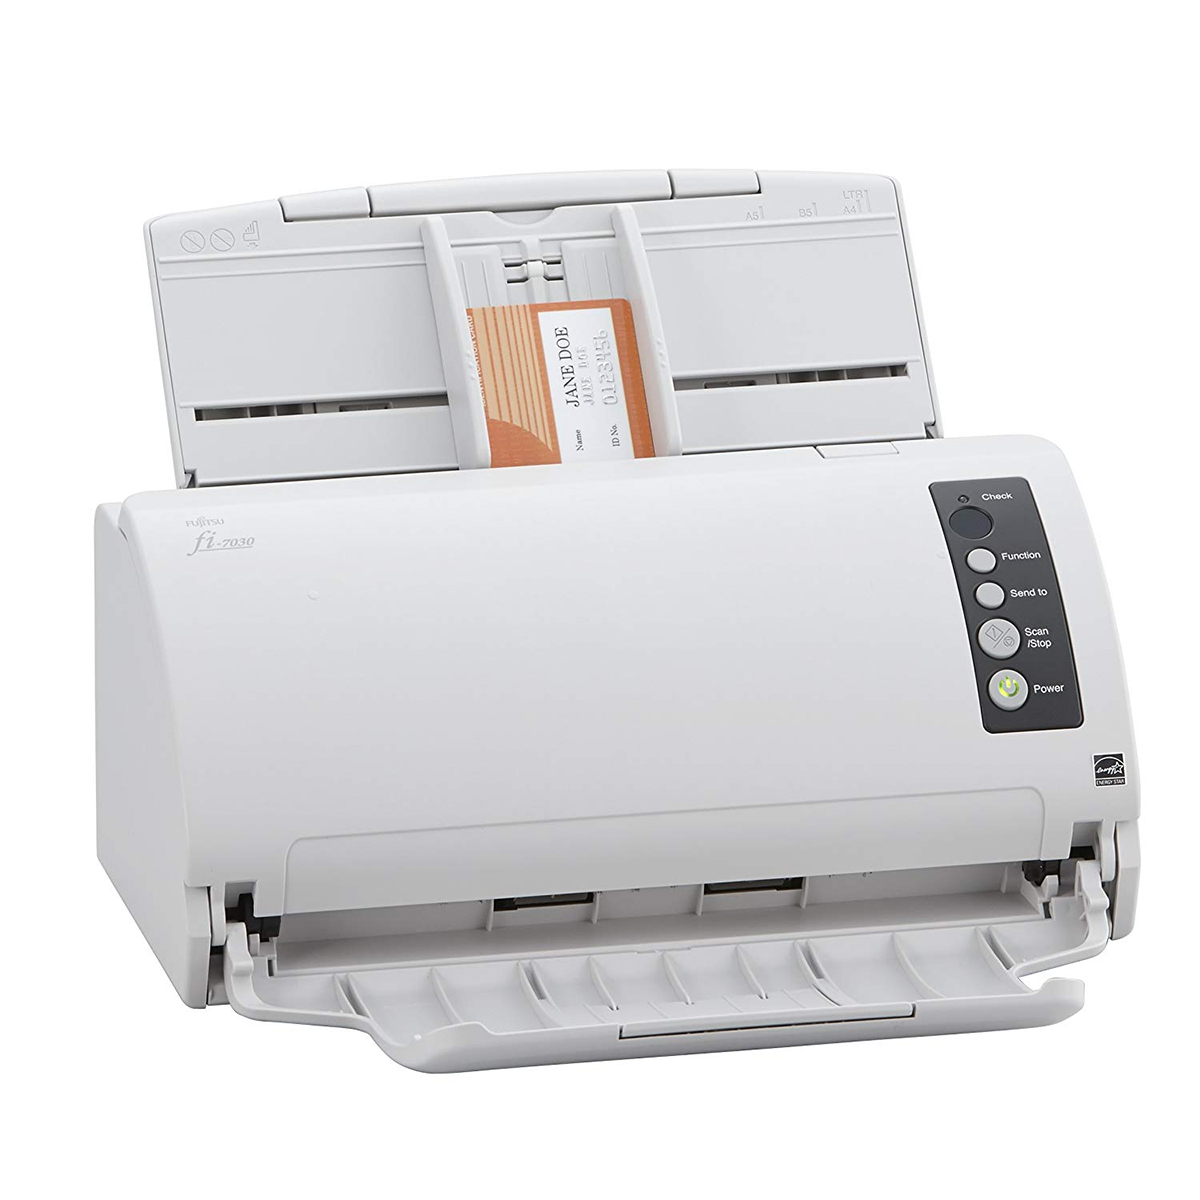 Fujitsu fi-7030 A4 Document Scanner